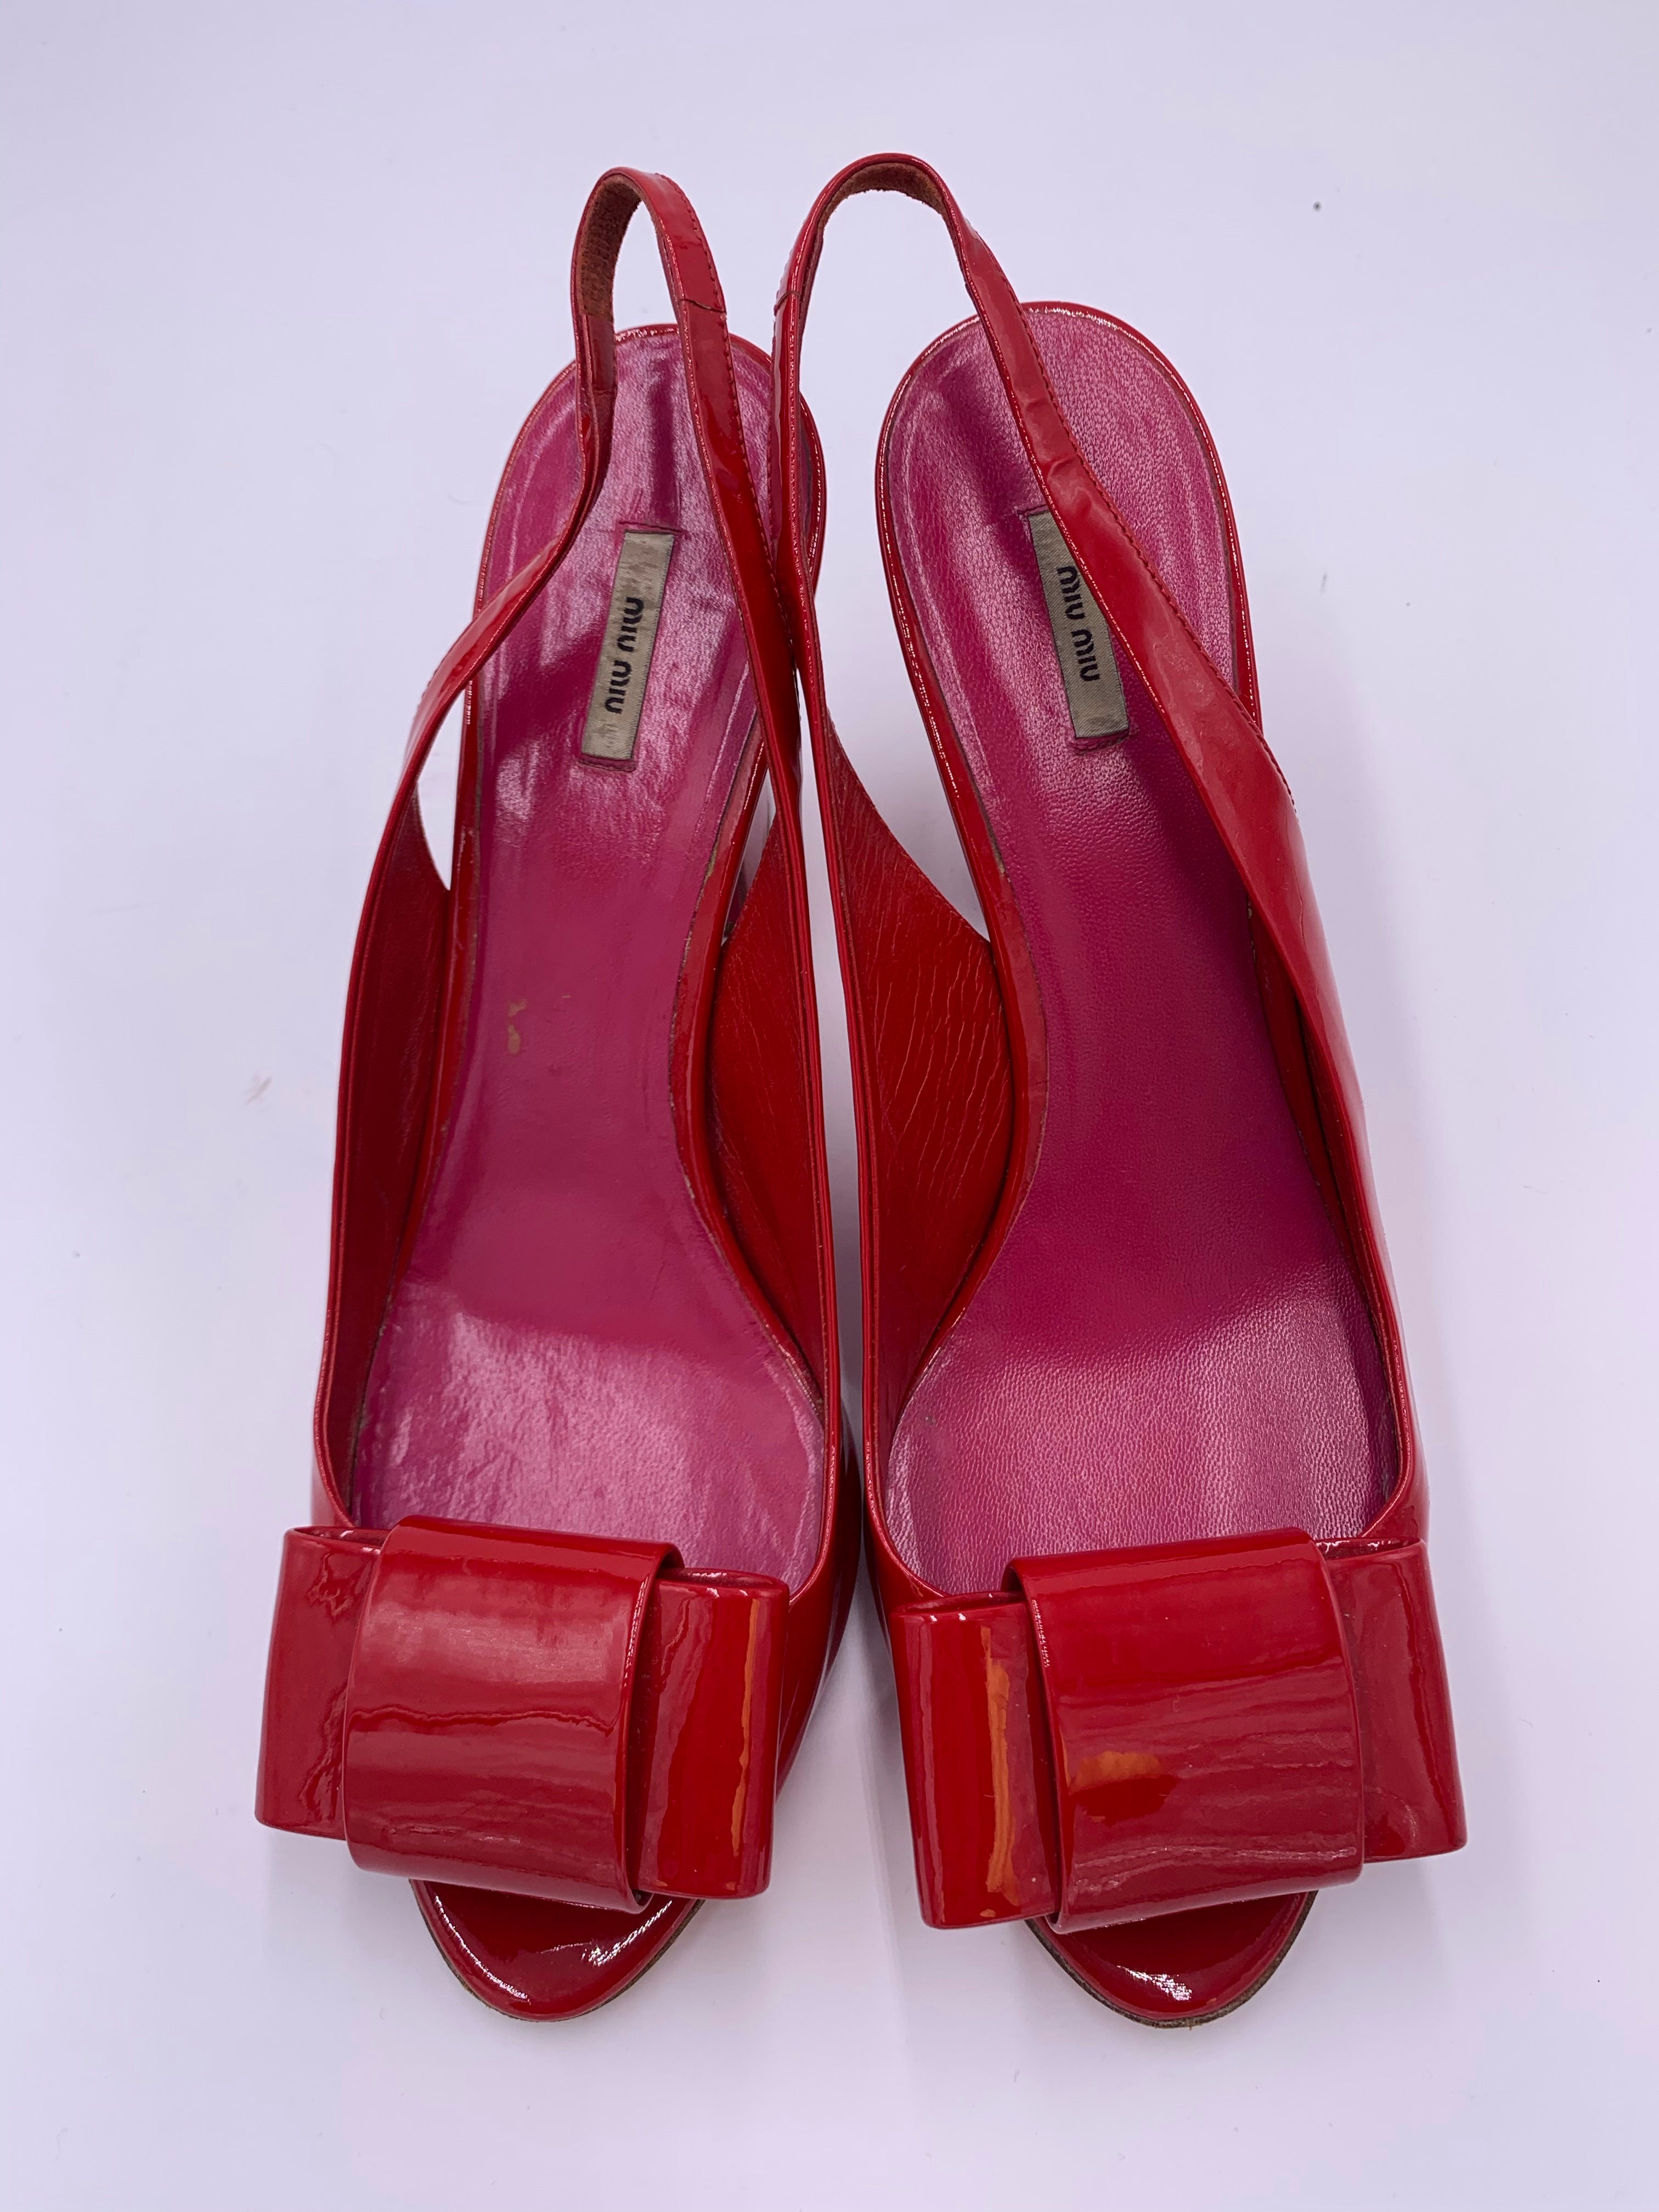 Miu Miu Bow Peep Toe Sling Back heels in Red